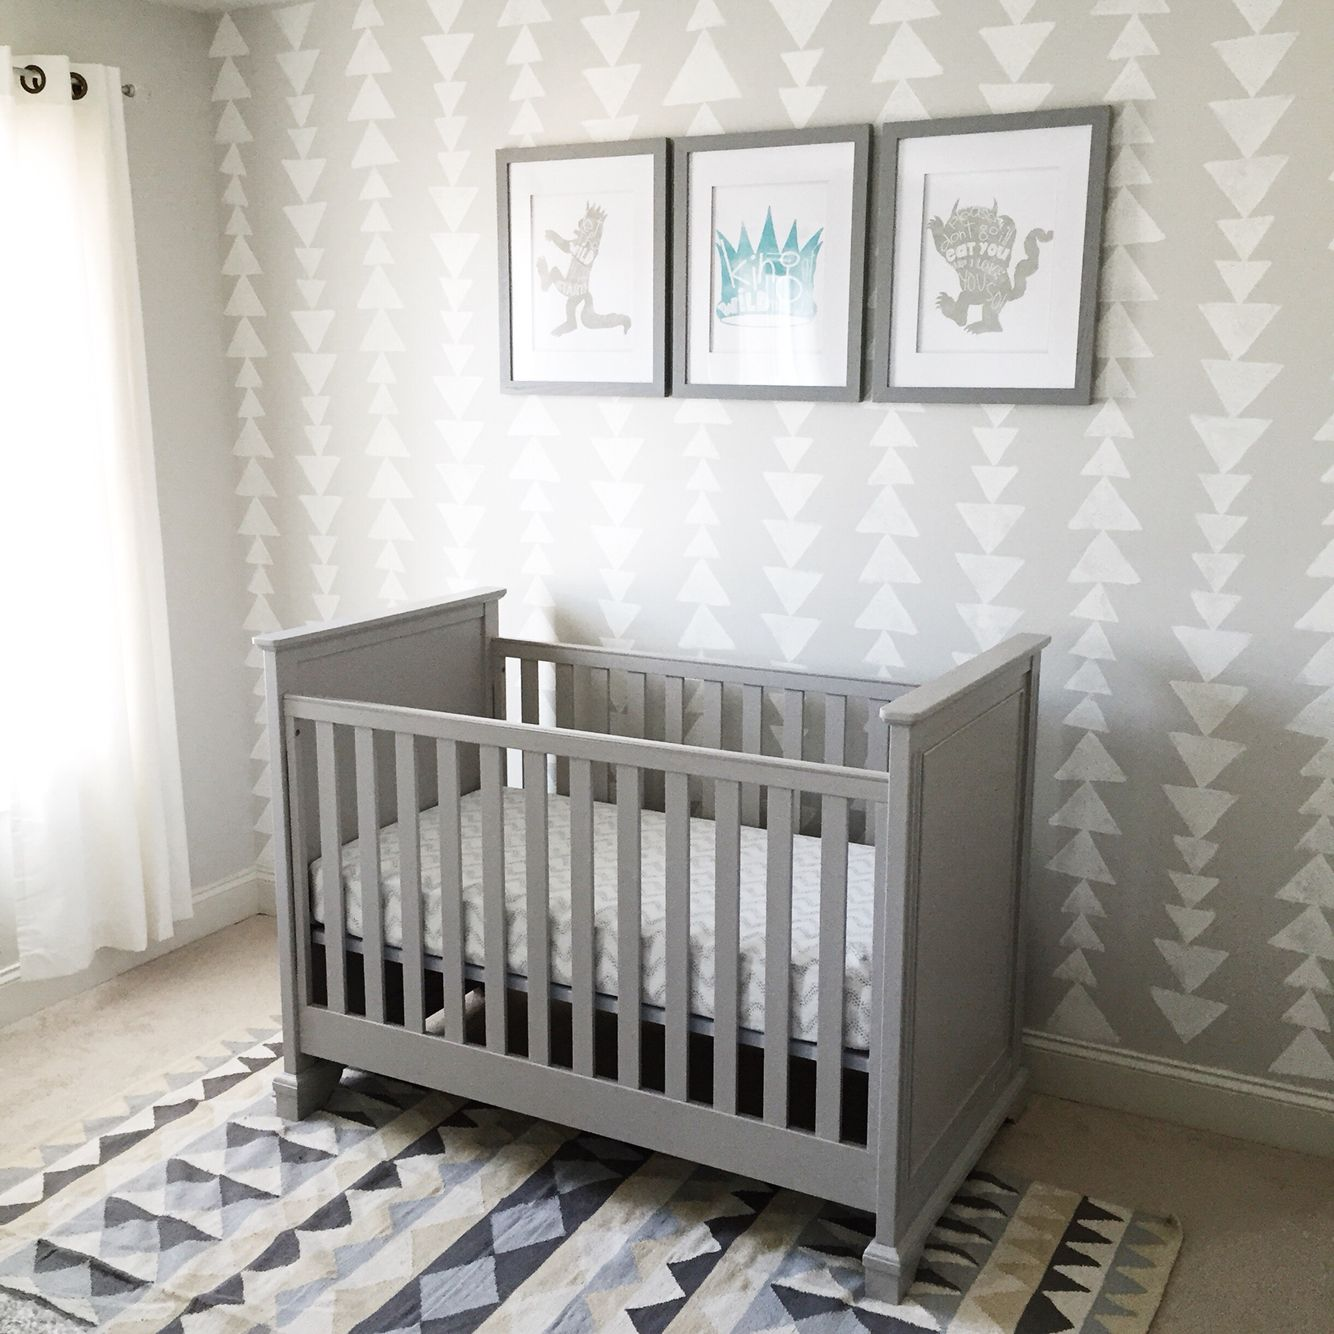 Crib for sale in palm bay - Perfectly Imperfect Triangles Crib Rug